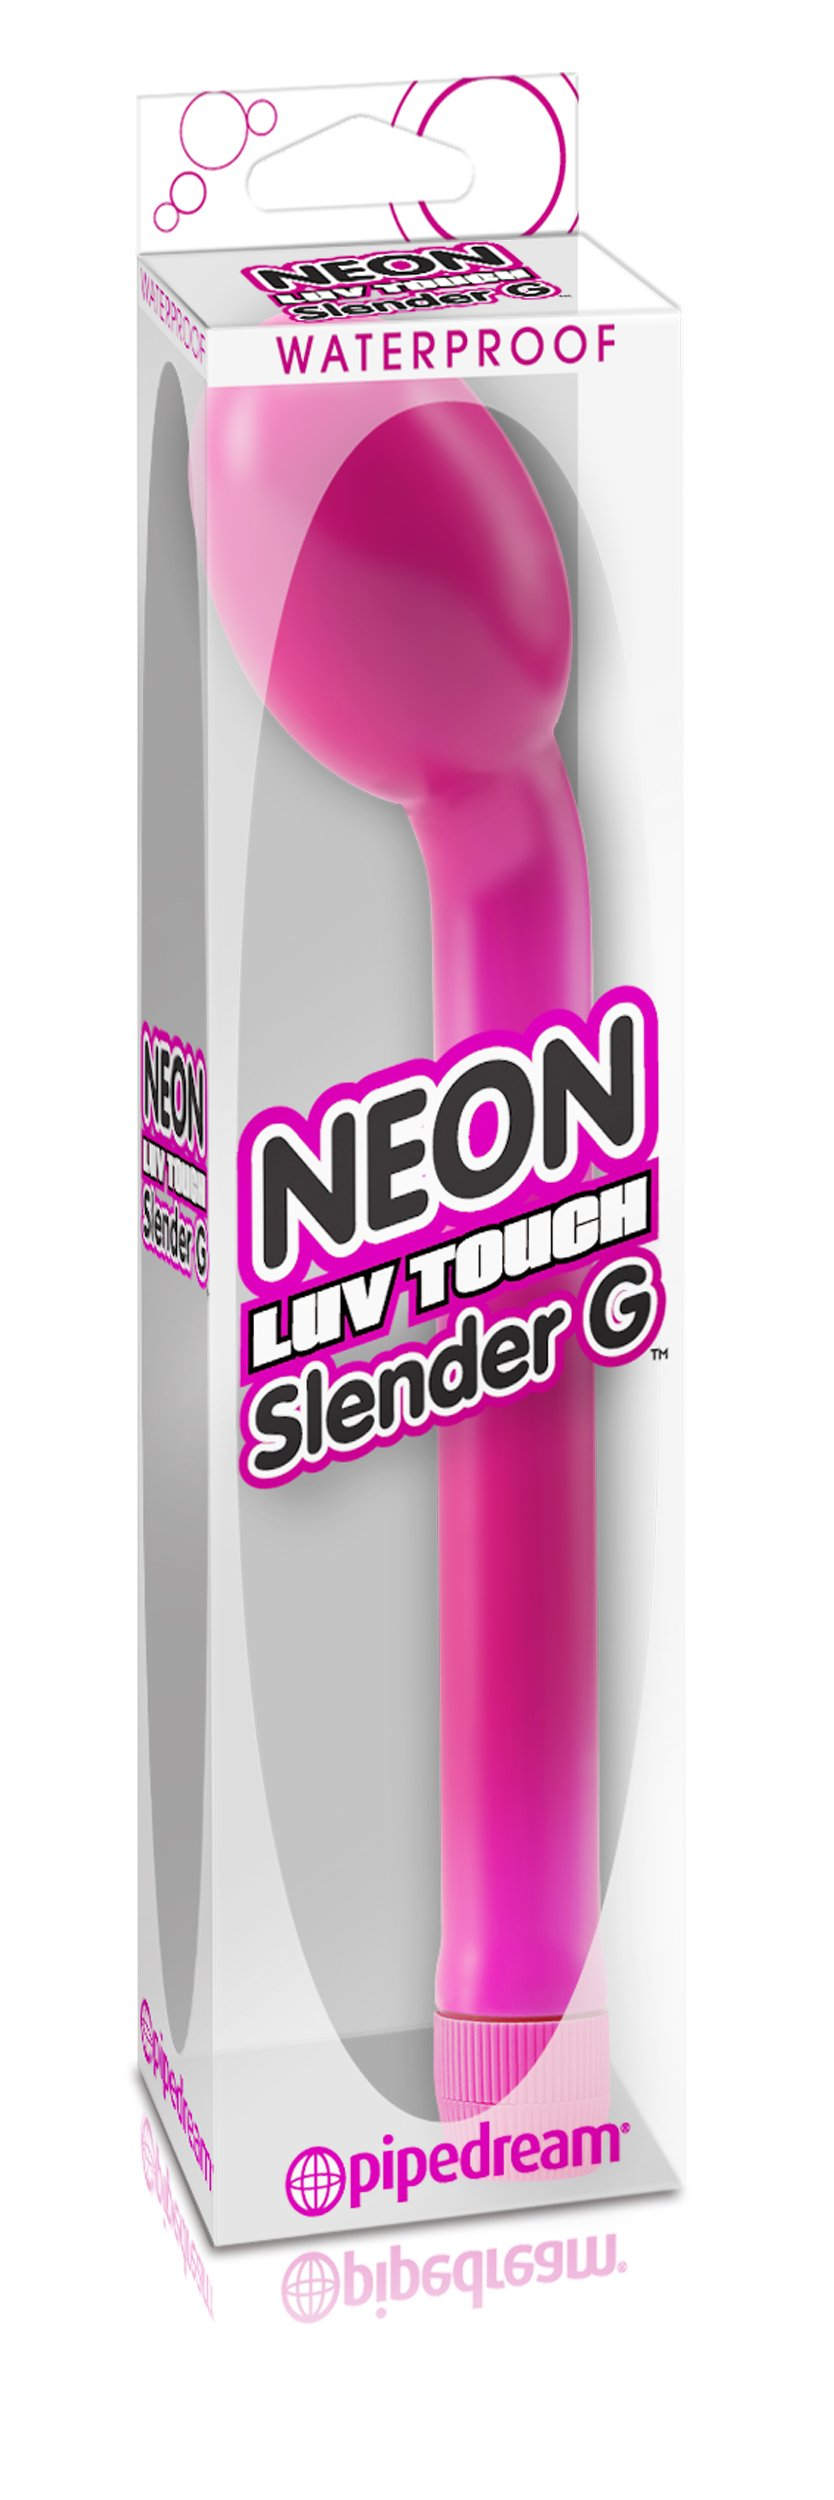 Top Rated - Neon Luv Touch Slender G Pink